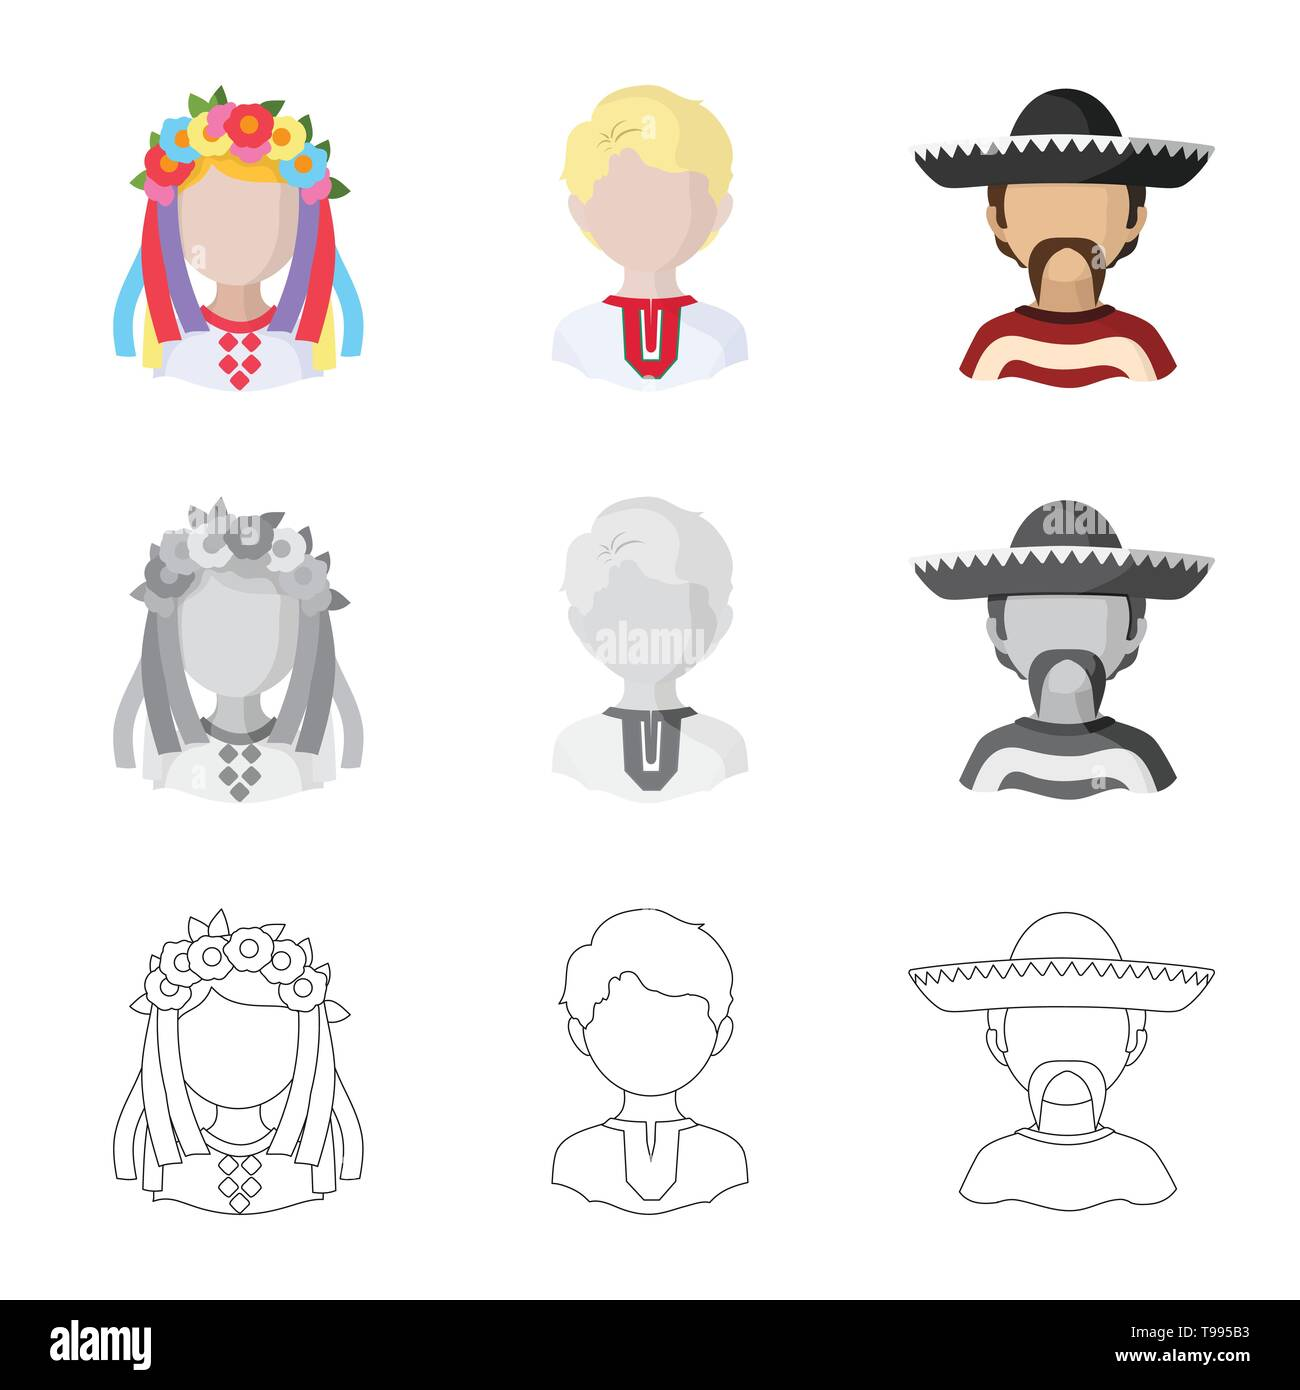 Vector illustration of imitator and resident symbol. Set of imitator and culture stock symbol for web. - Stock Image